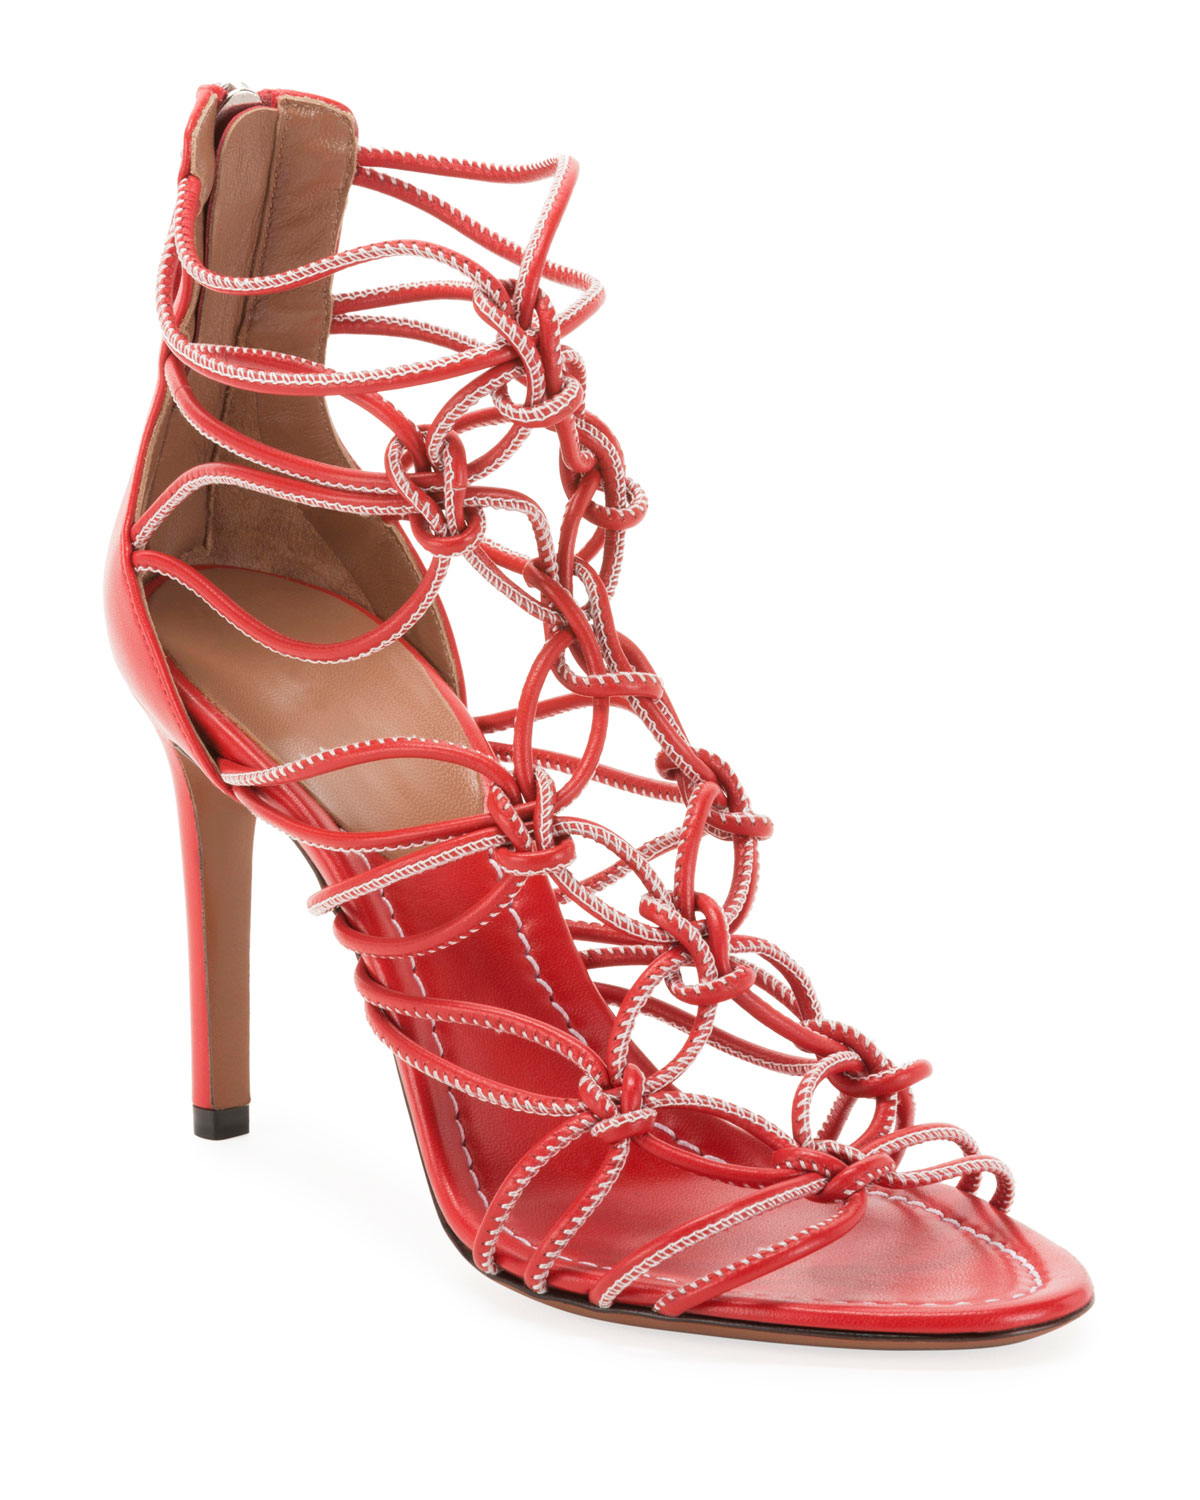 Elegant Knotted Cord Zip Sandals